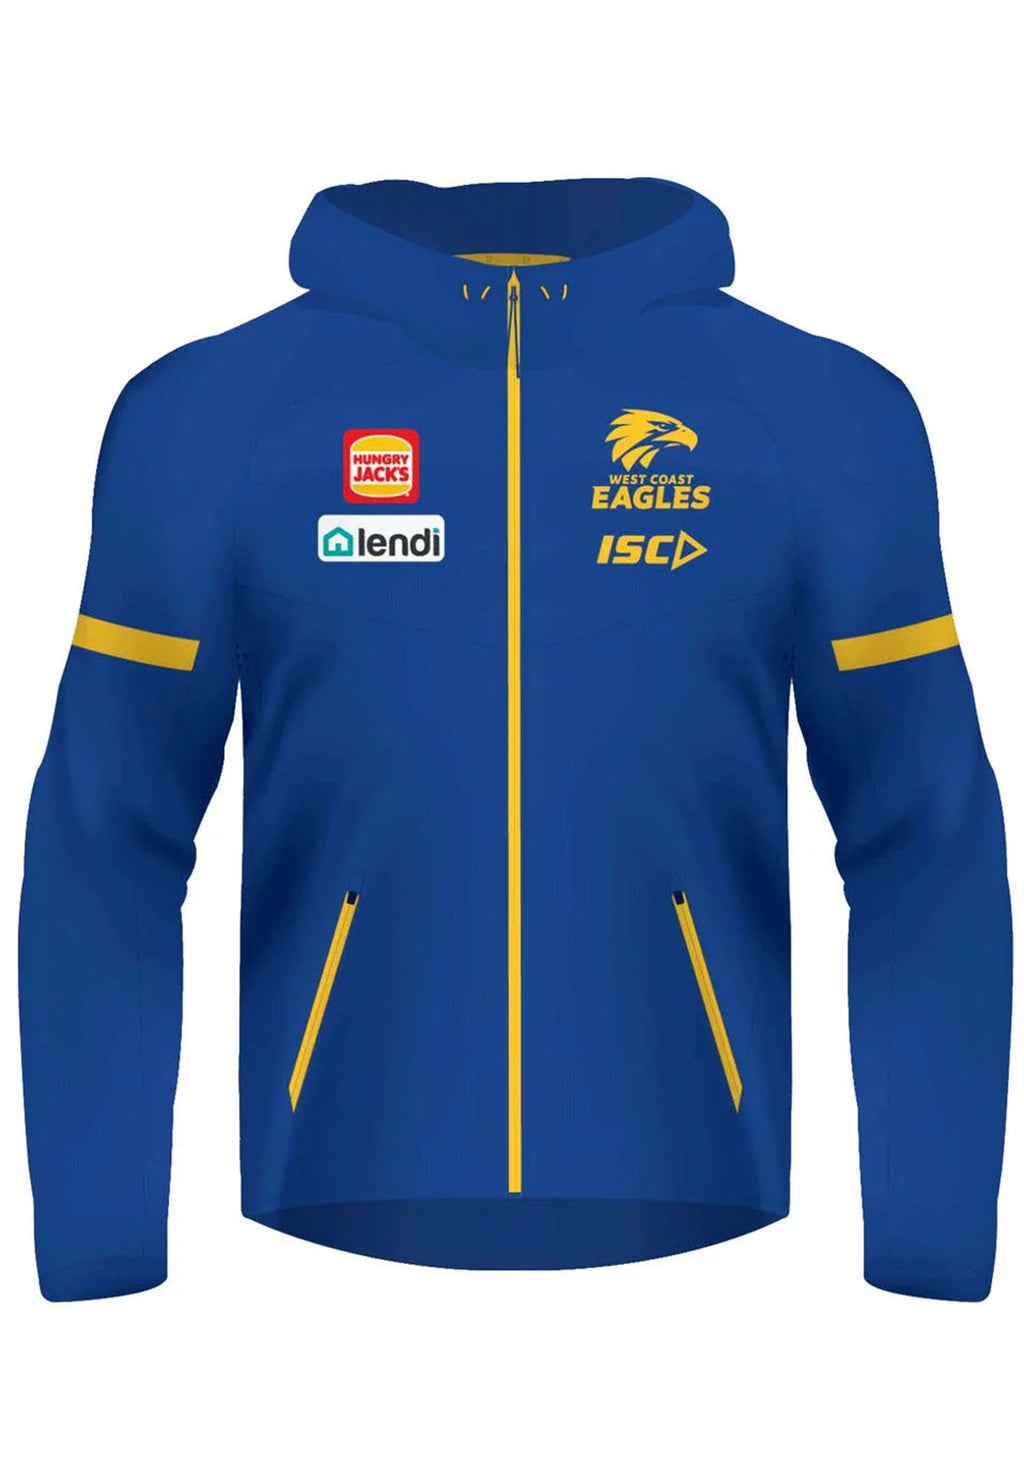 ISC WOMENS WEST COAST EAGLES 2020 TECH PRO HOODIE <BR> WC20HDY02L